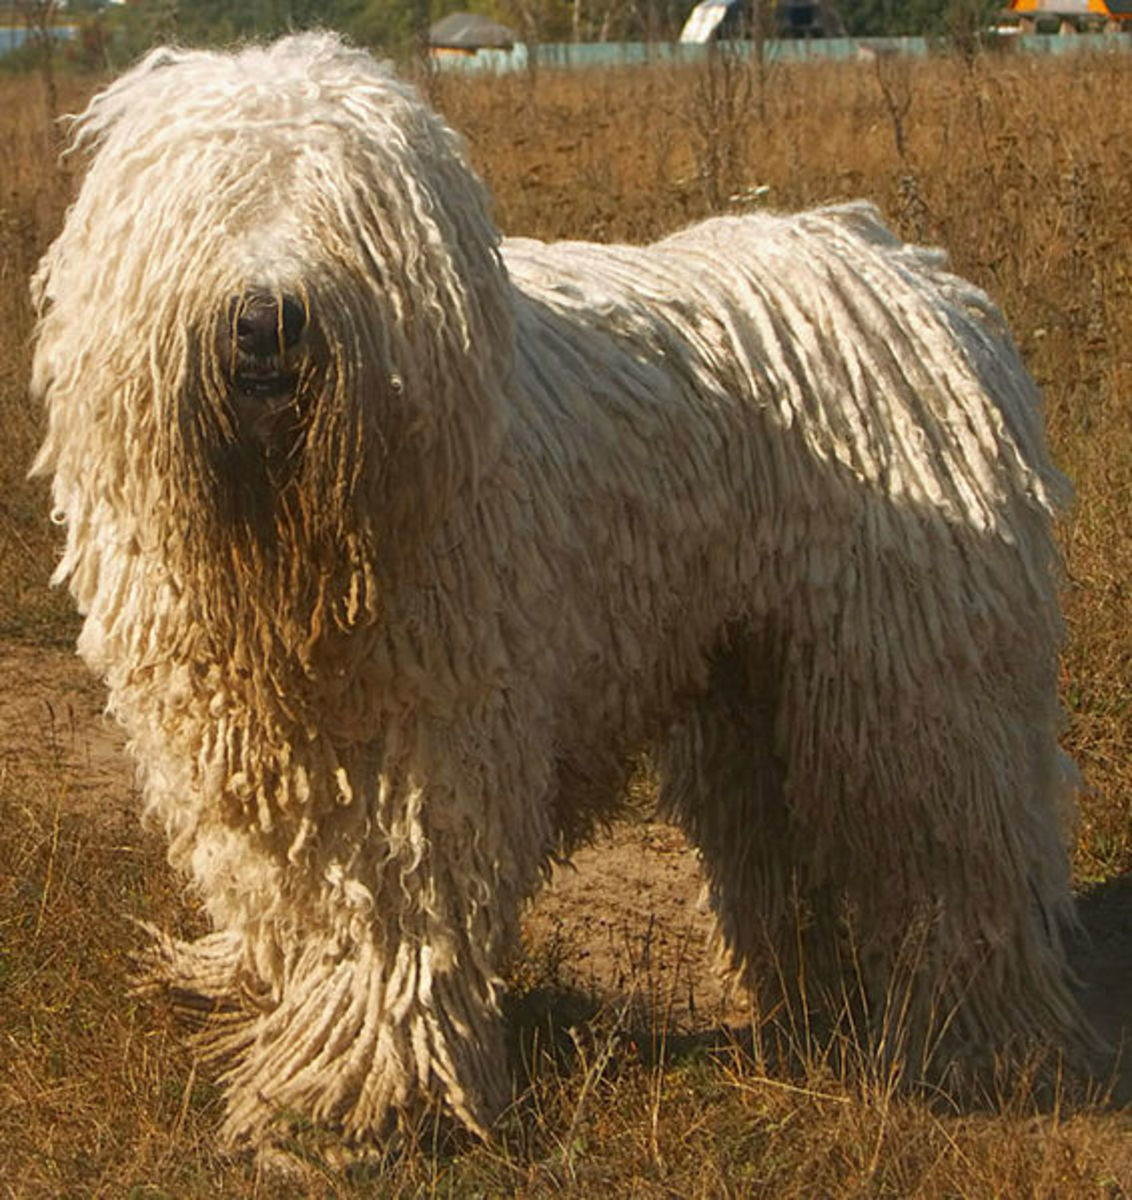 The Komondor coat naturally falls into cords.